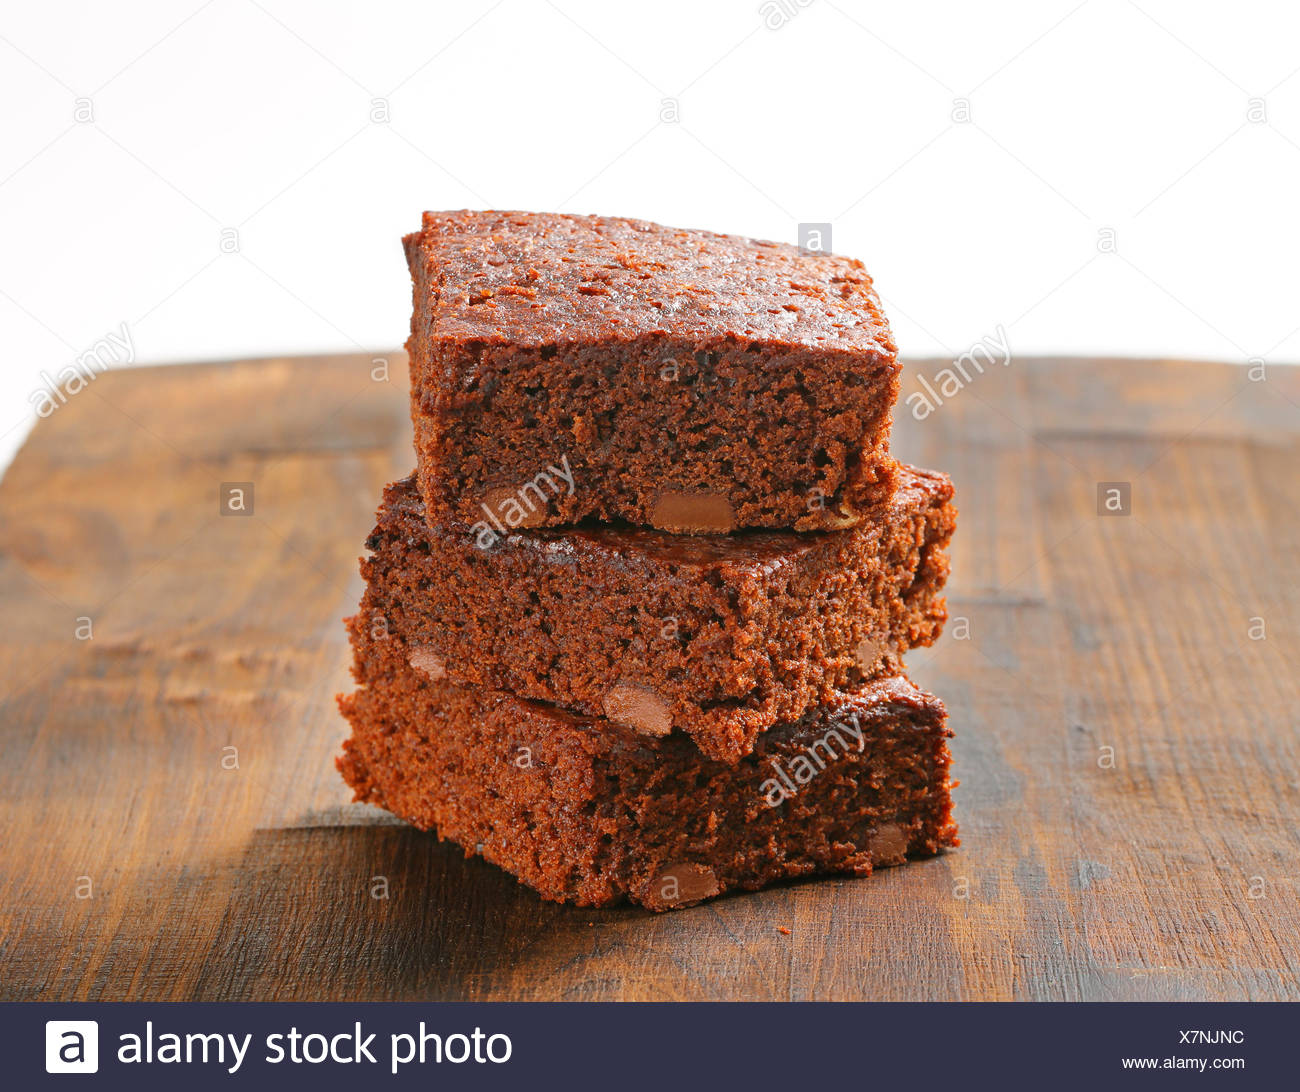 Pile of Fudgy Chocolate Chip Brownies Stock Photo